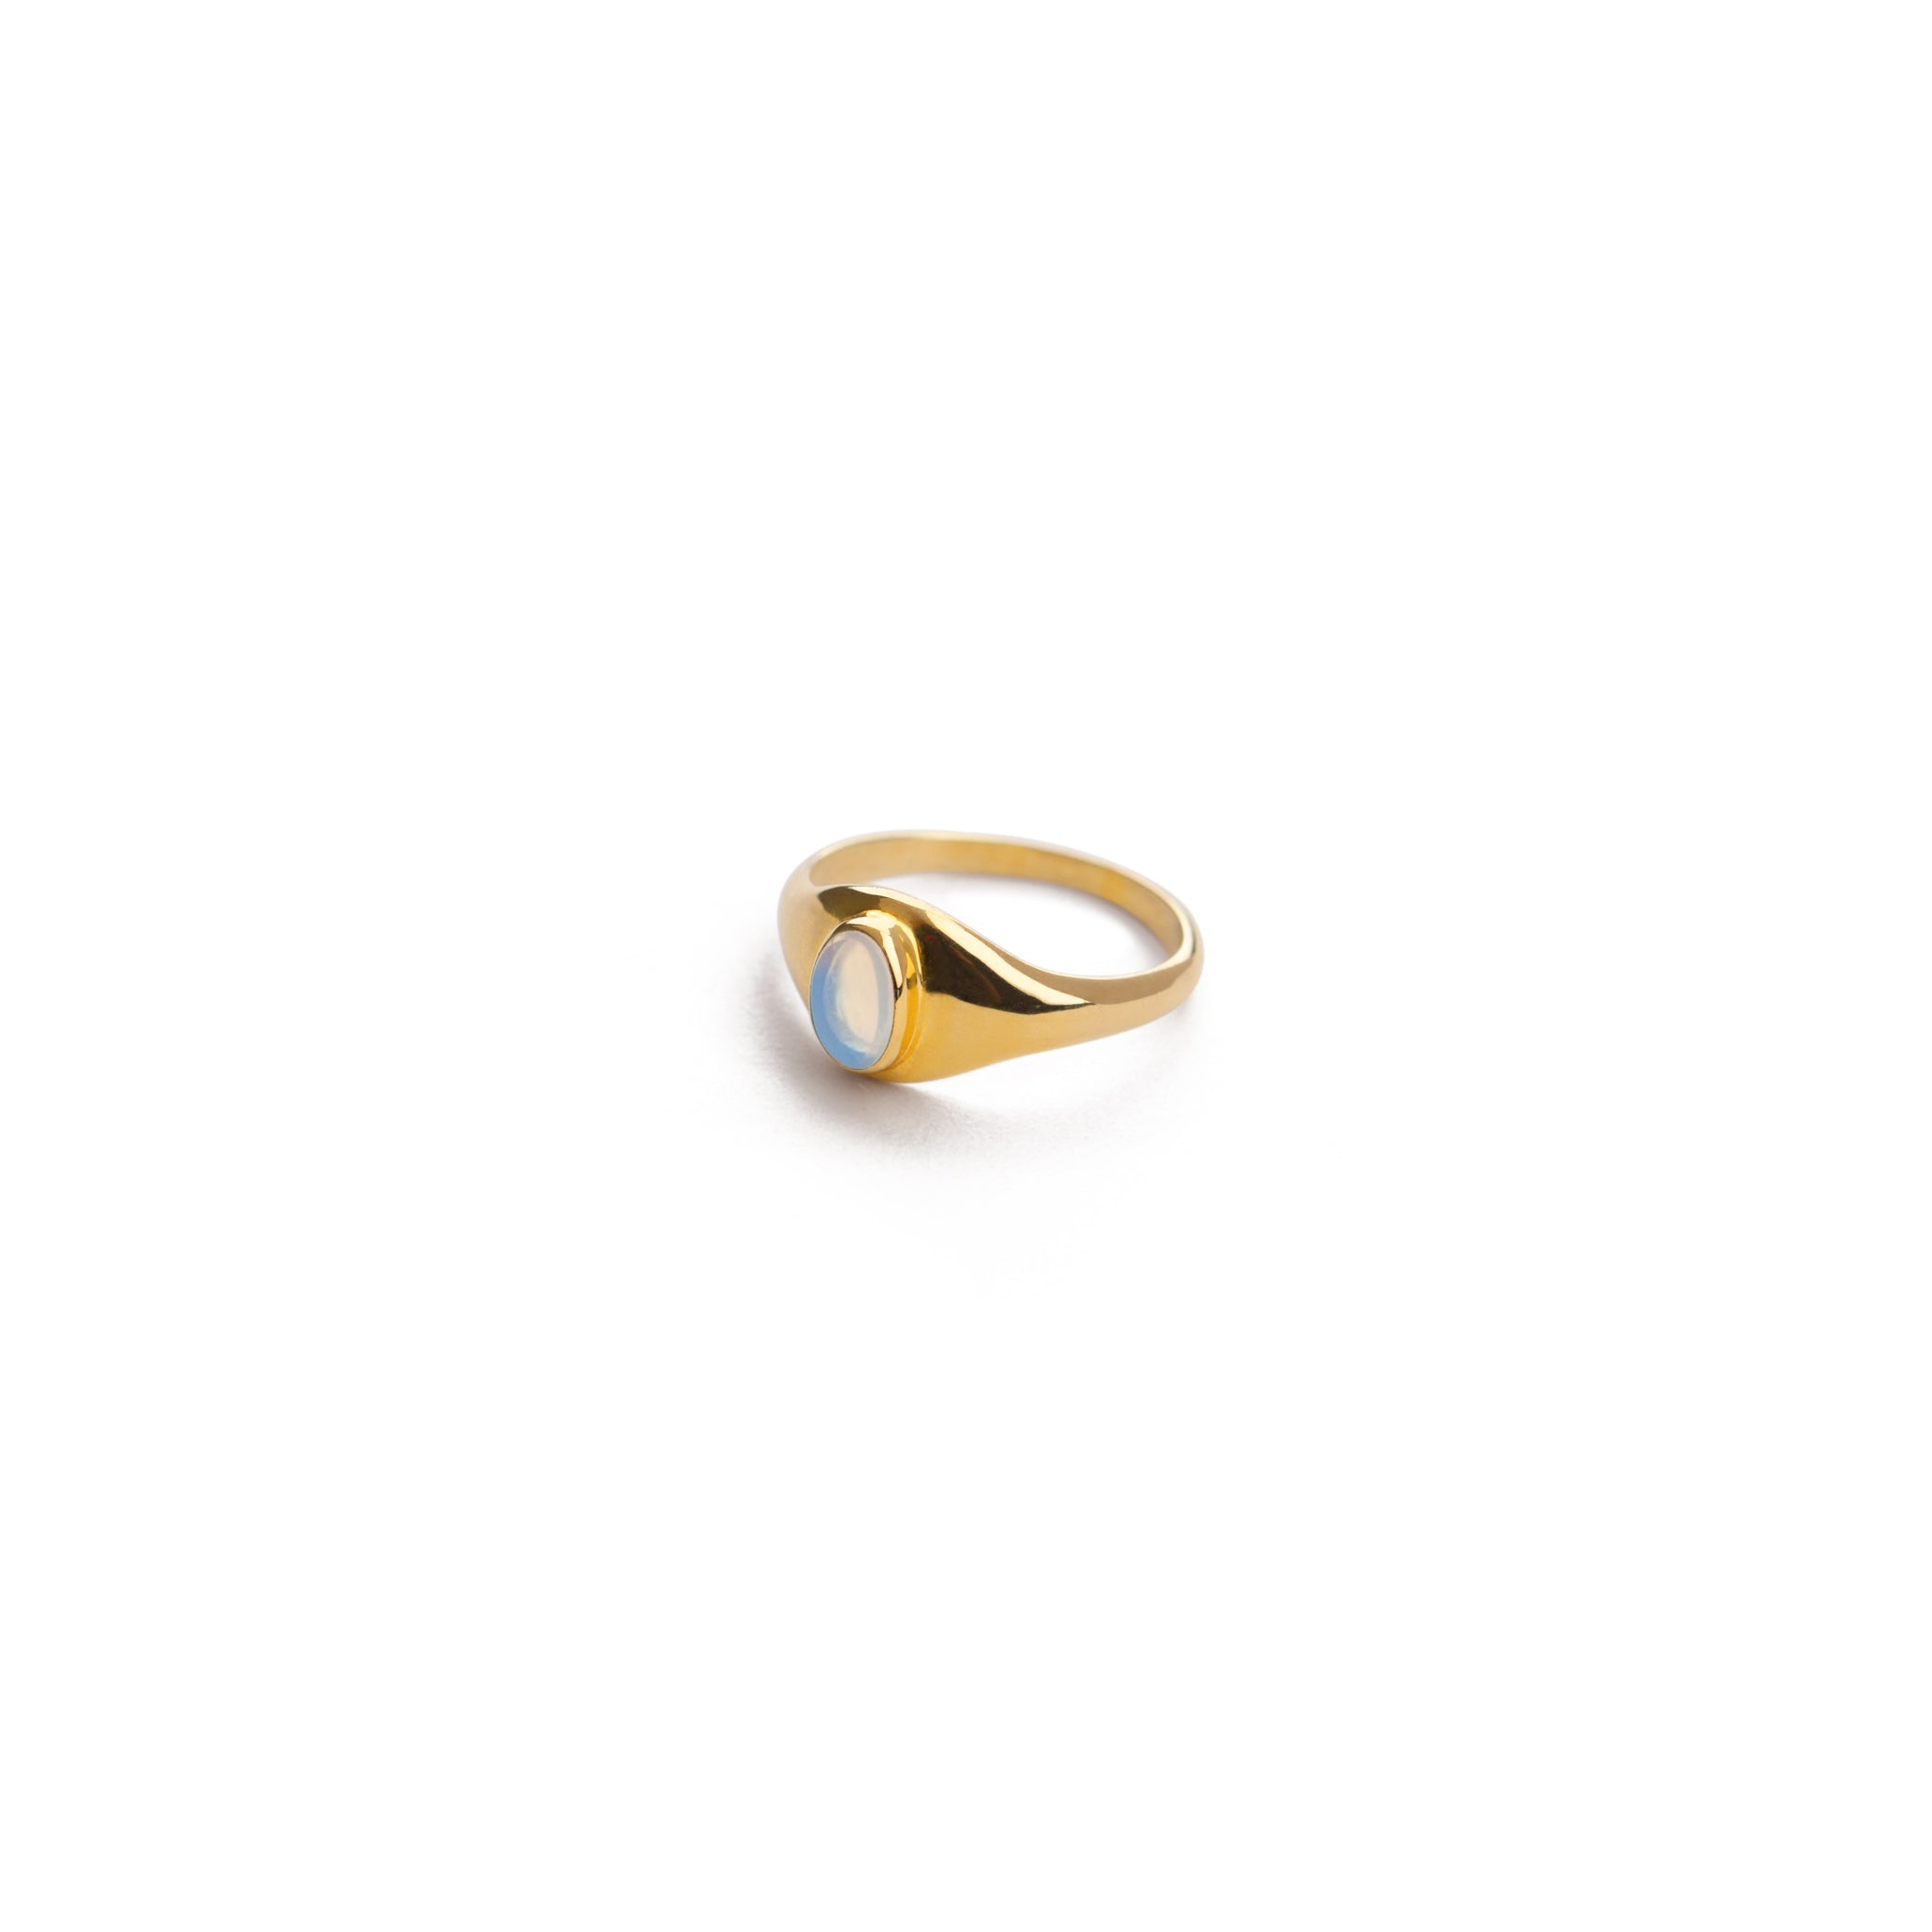 Atlas Signet Rings - Jewel Rocks